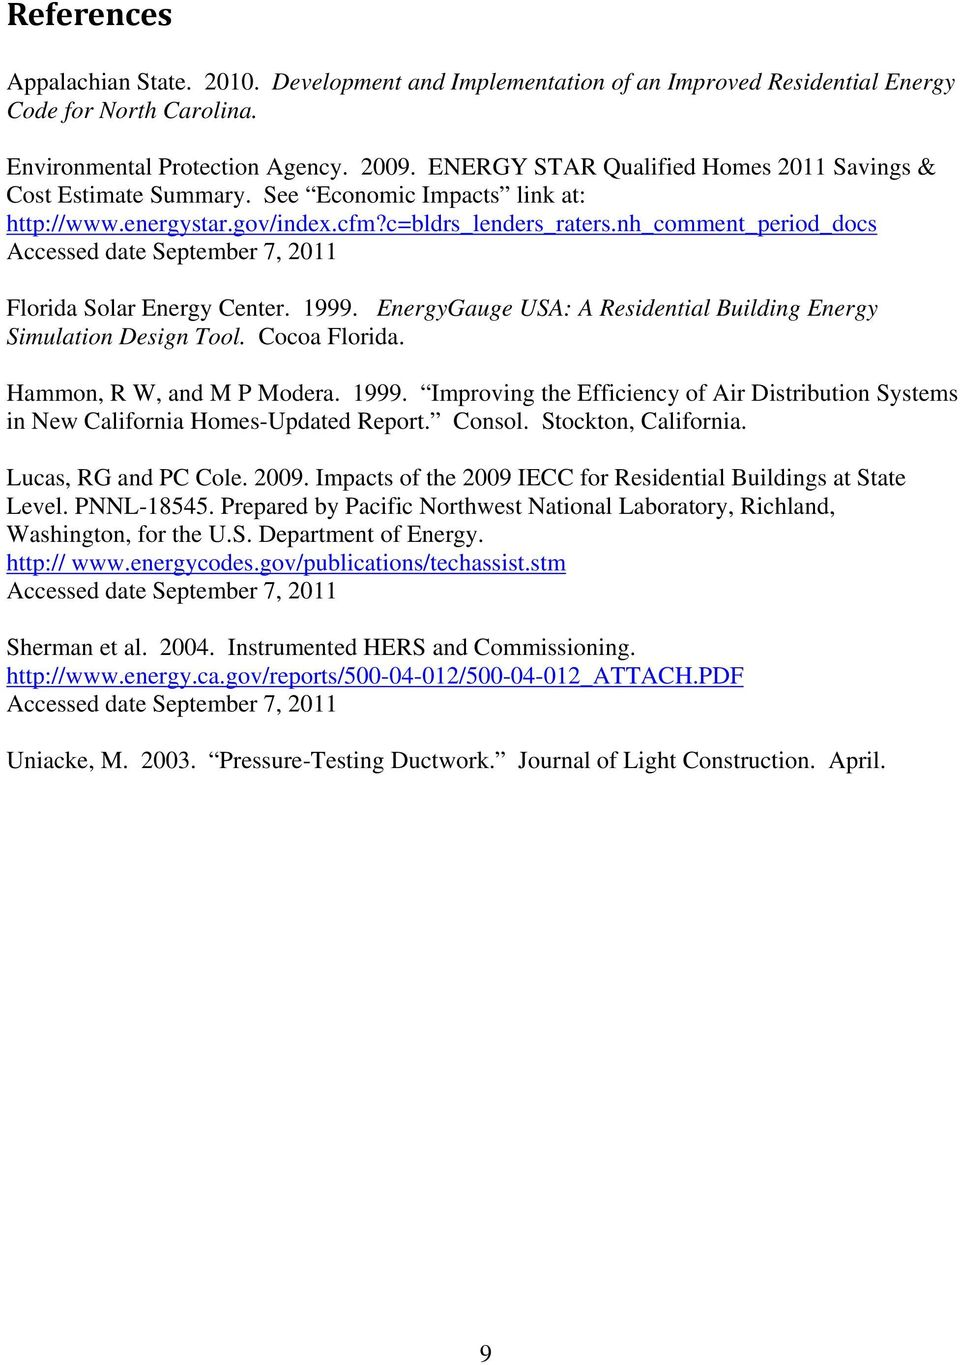 nh_comment_period_docs Accessed date September 7, 2011 Florida Solar Energy Center. 1999. EnergyGauge USA: A Residential Building Energy Simulation Design Tool. Cocoa Florida.